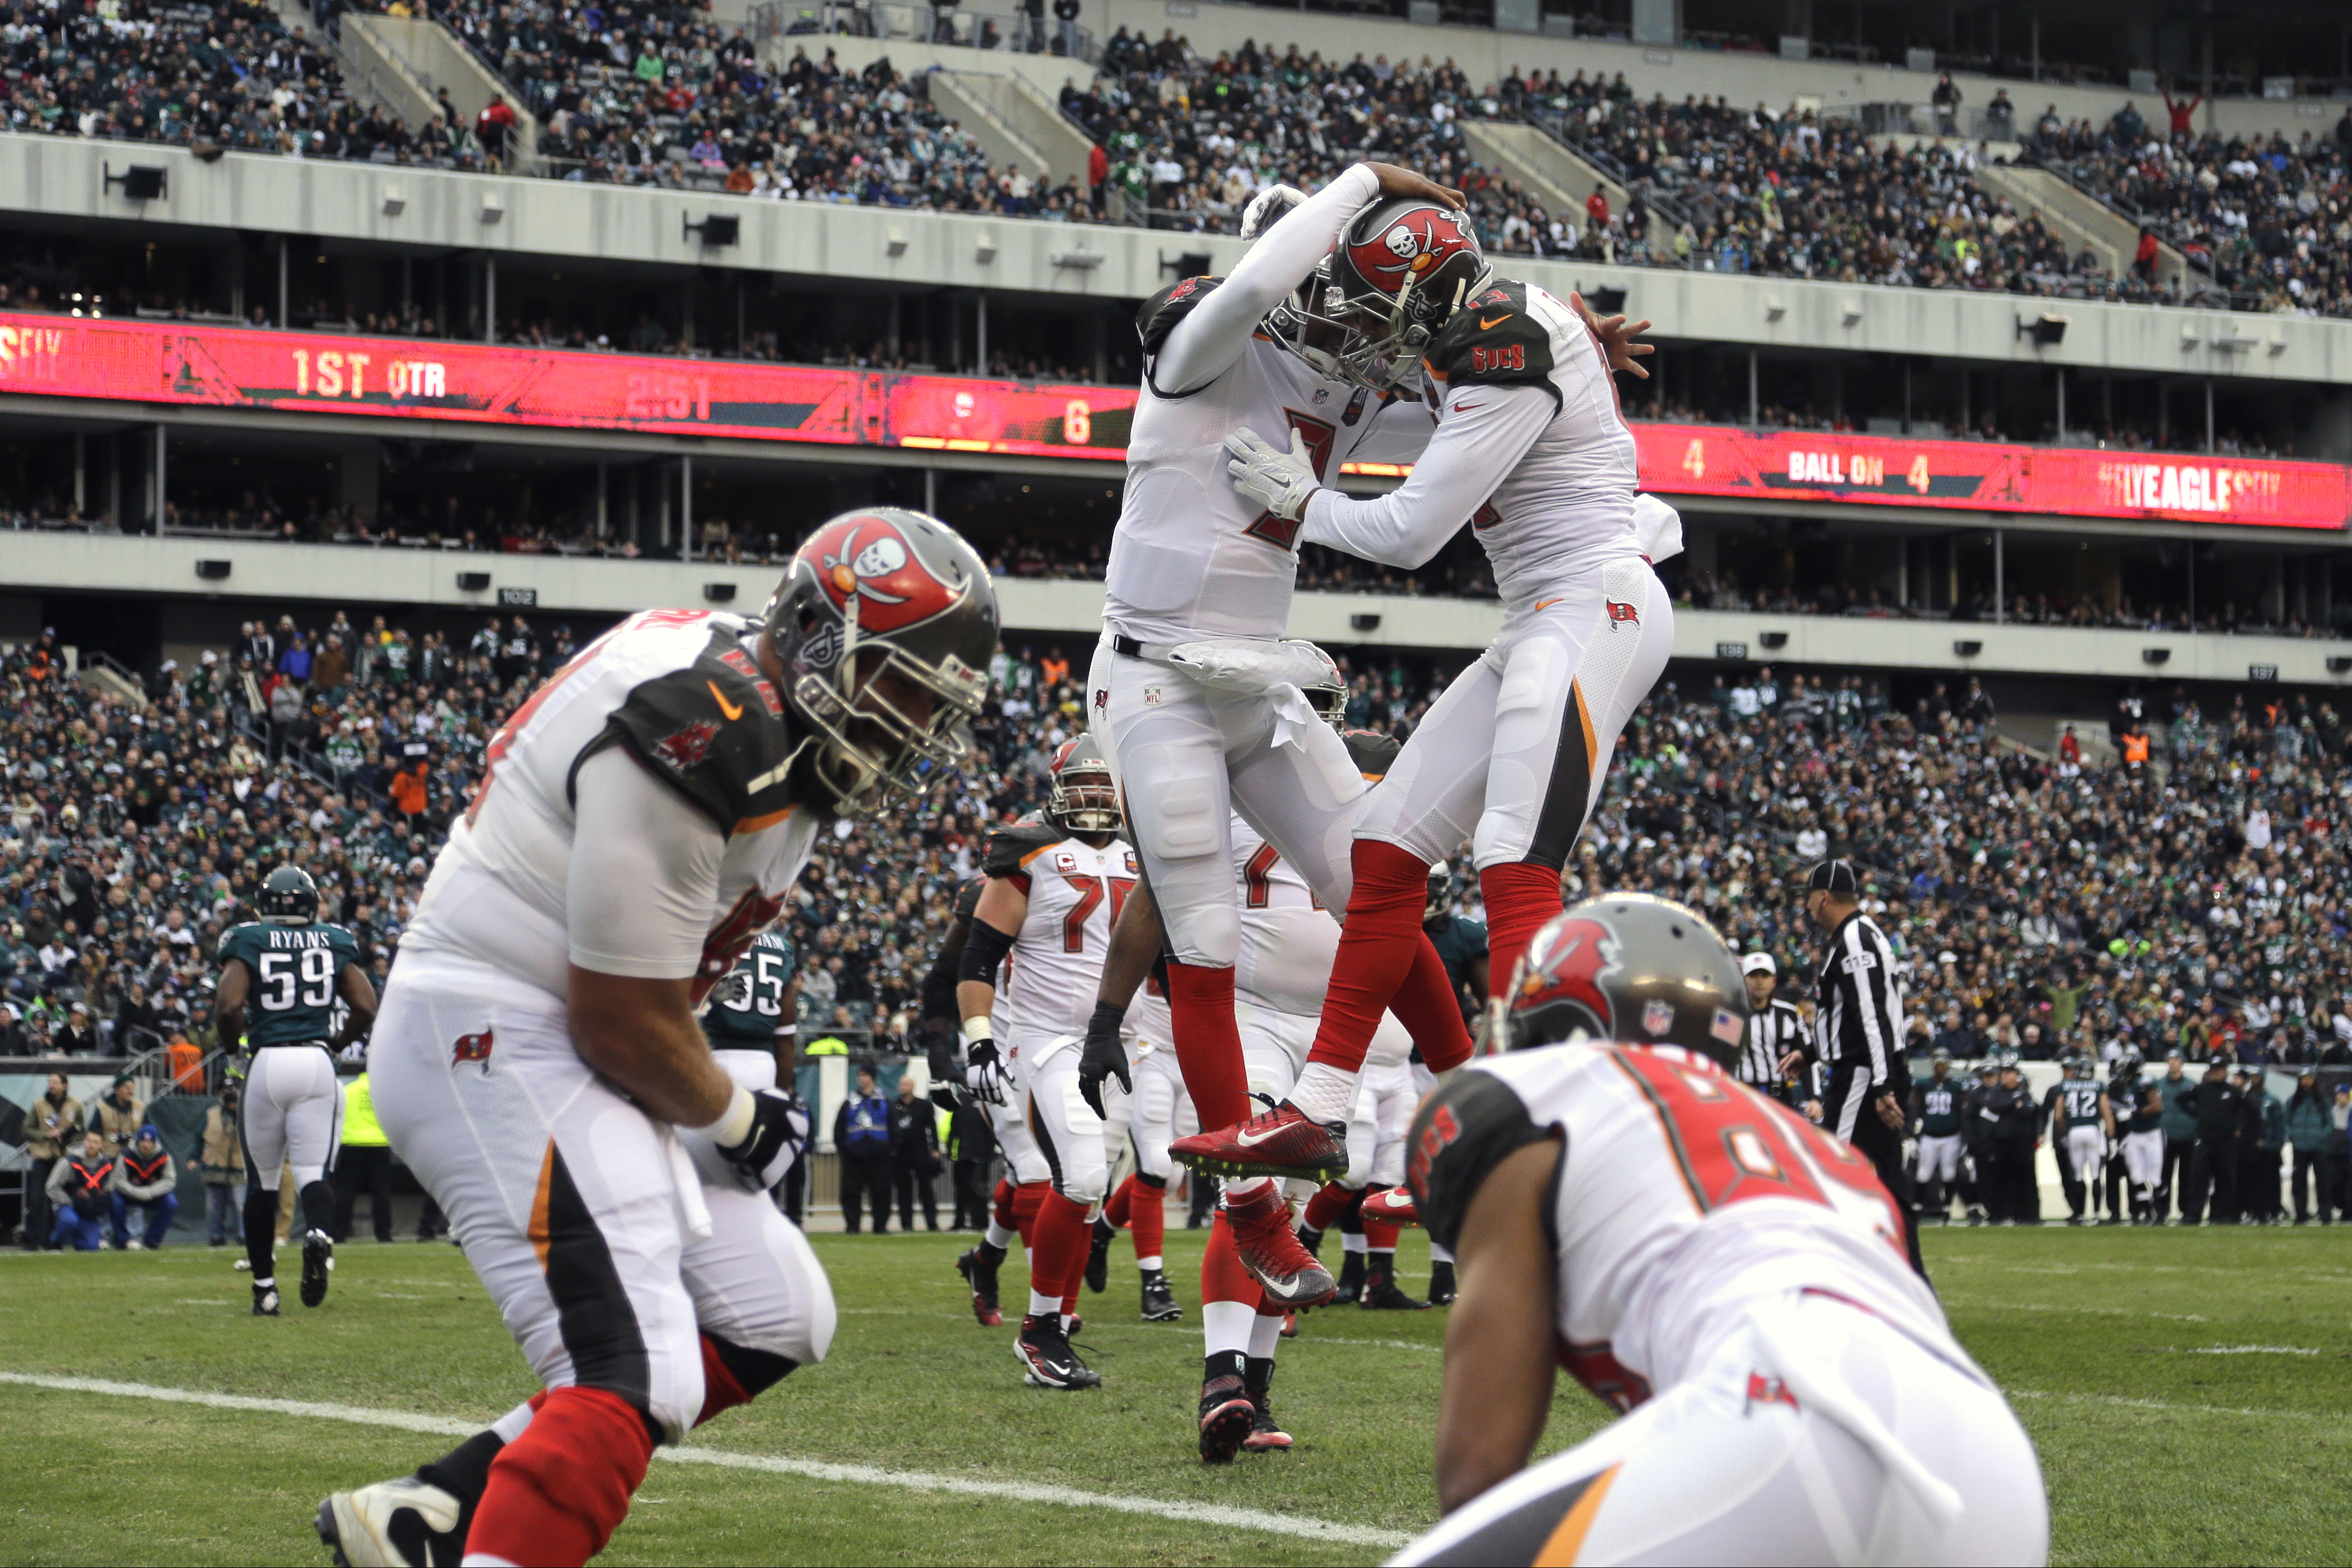 Tampa Bay Buccaneers' Mike Evans (13) and Jameis Winston (3) celebrate after Evans' touchdown during the first half of an NFL football game against the Philadelphia Eagles, Sunday, Nov. 22, 2015, in Philadelphia. (AP Photo/Matt Rourke)